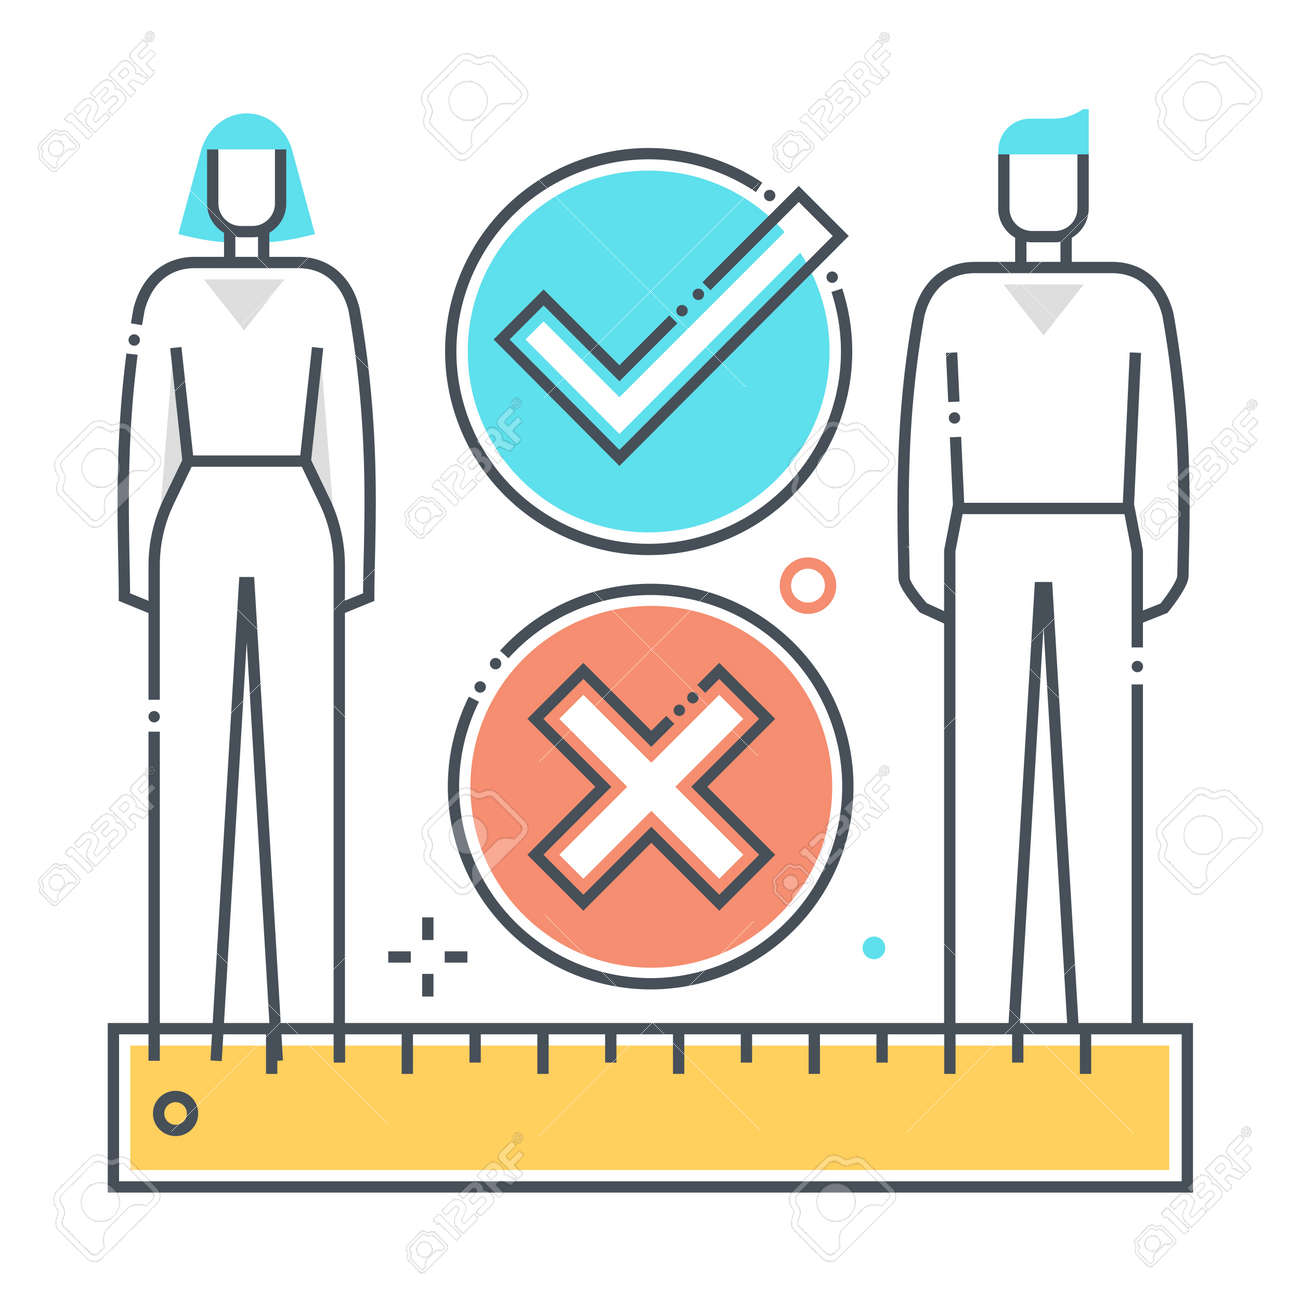 Social distance related color line vector icon, illustration. The icon is about meter, feet, ruler, protection, corona virus, contamination, epidemic. The composition is infinitely scalable. - 163698117